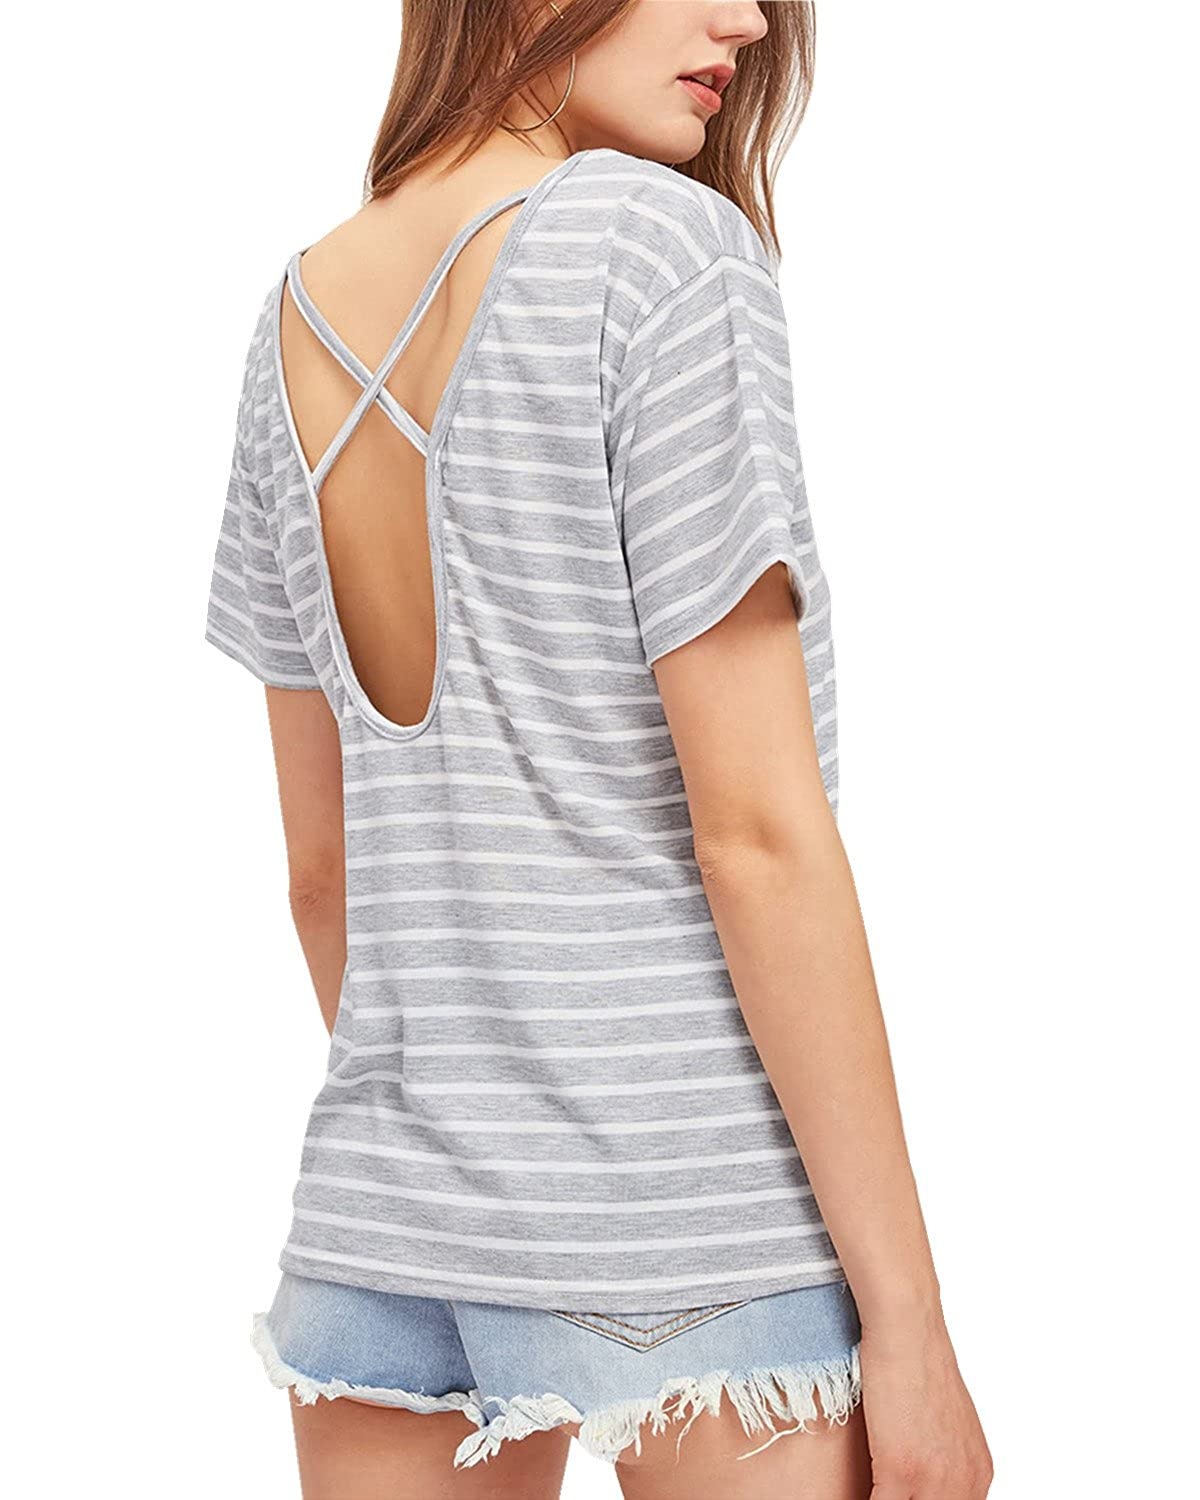 8b0f3f44 Amazon.com: Joeoy Women's Pocket V Neck Criss Cross Back Shirt Short Sleeve  Stripe T-Shirt Tee Tops: Clothing